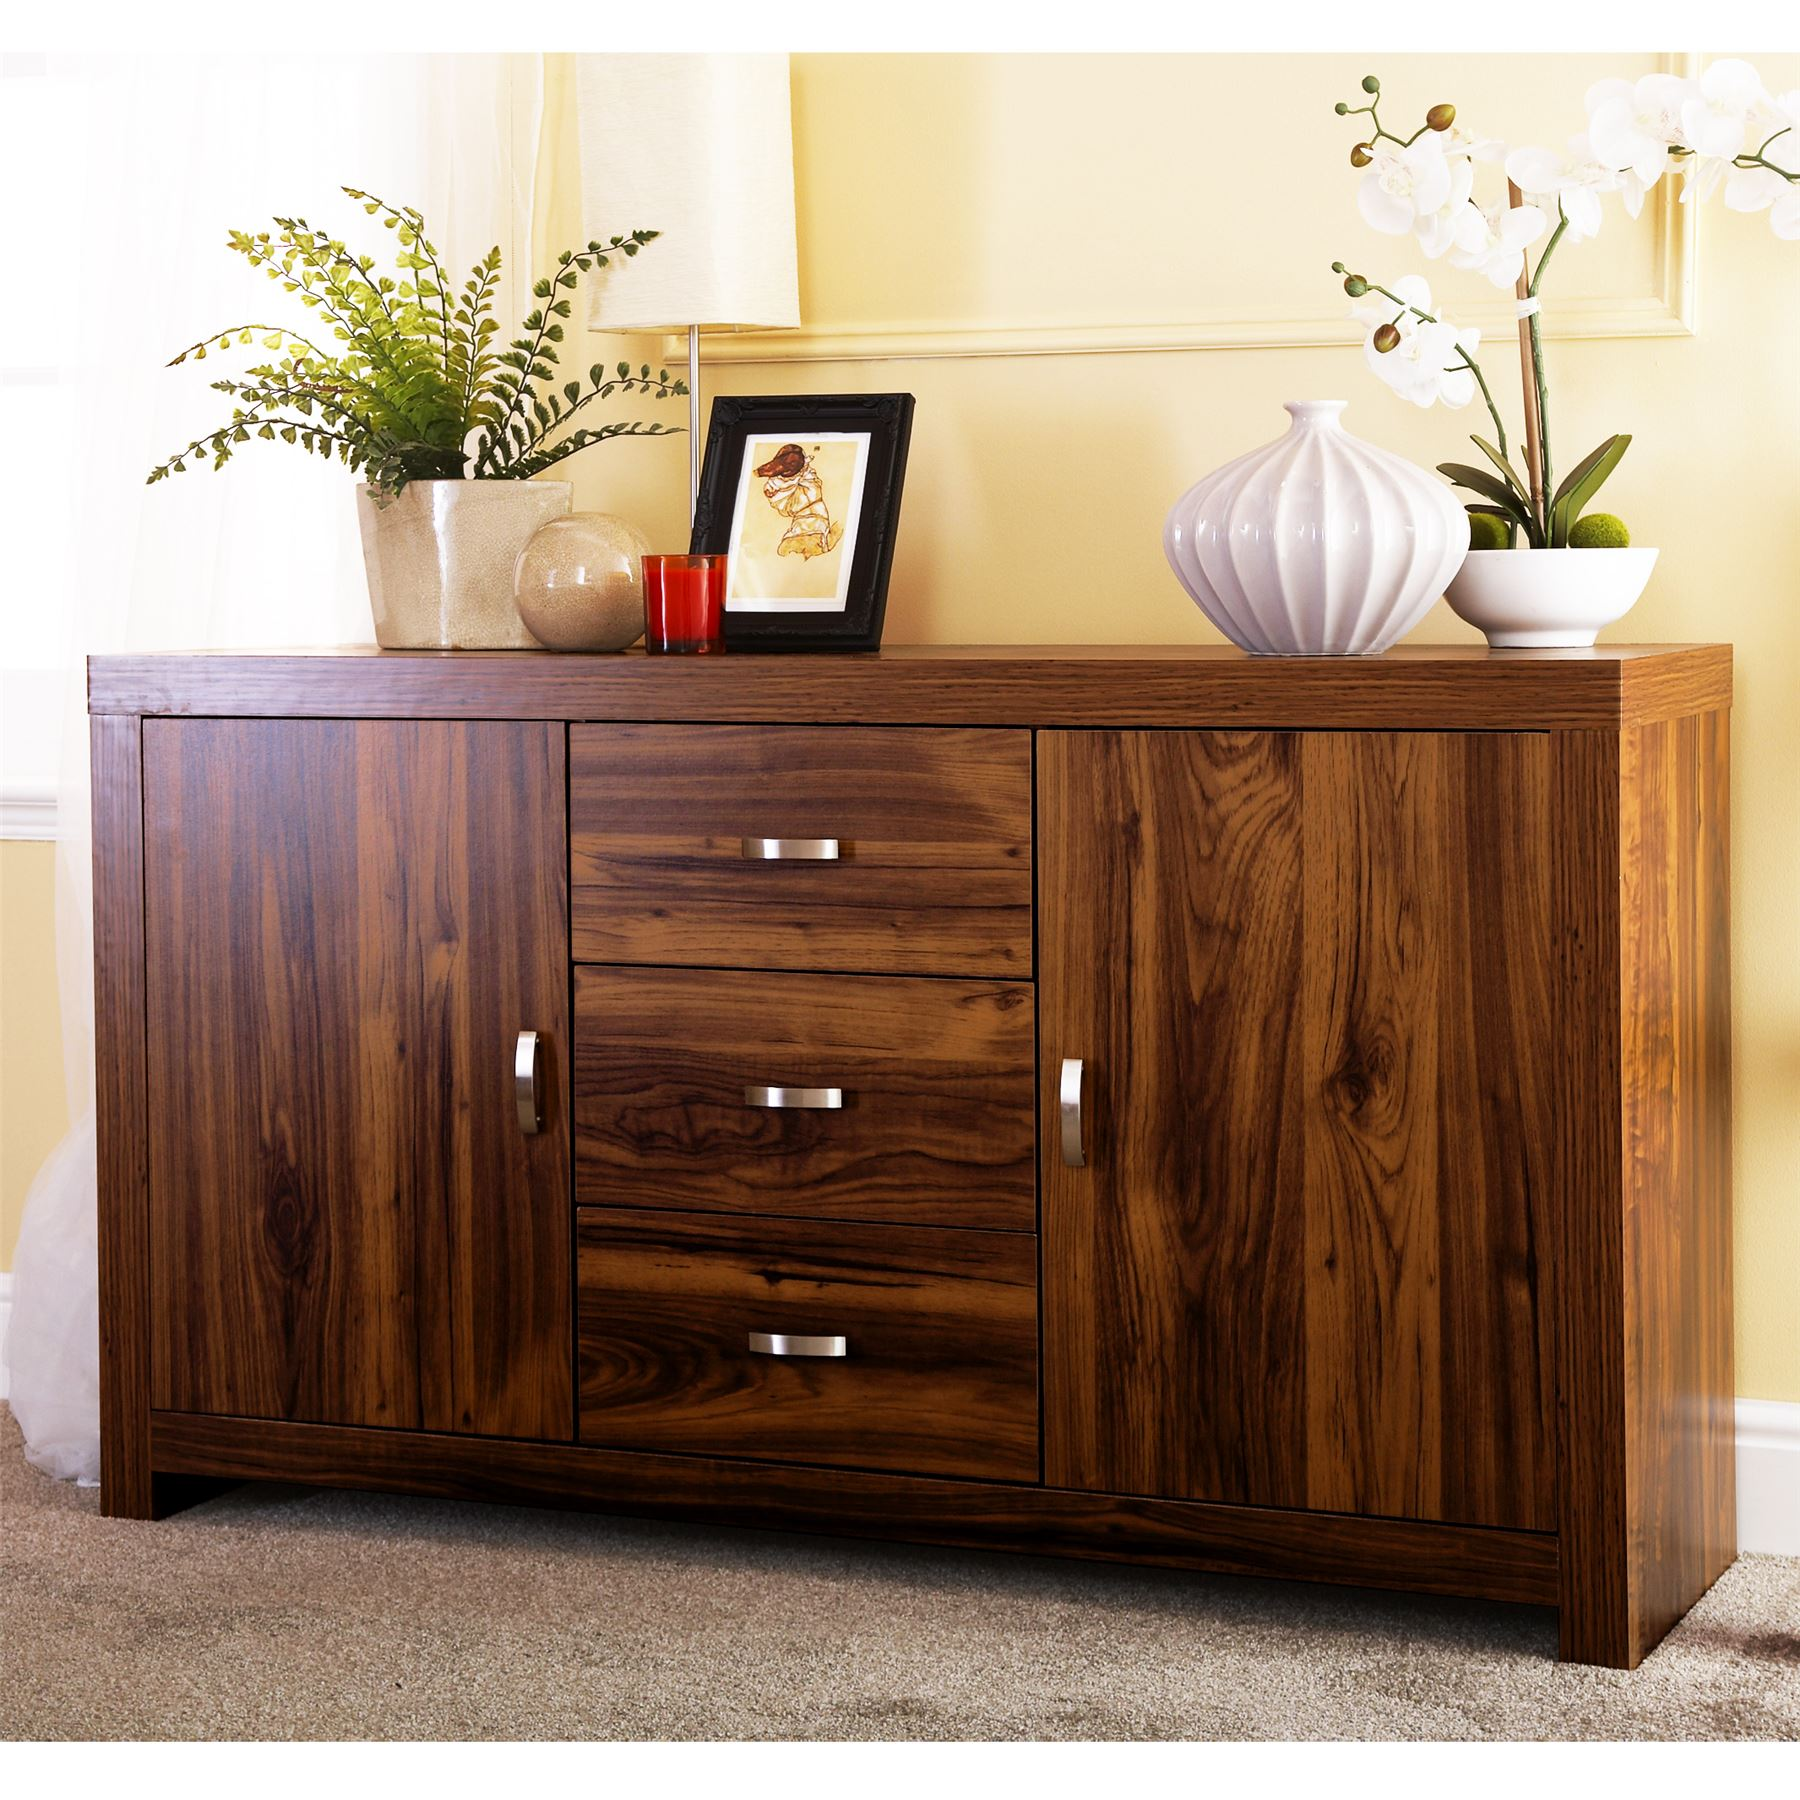 table austen numbers sideboard the sliding listed is under also door sku sometimes following temple webster manufacturer